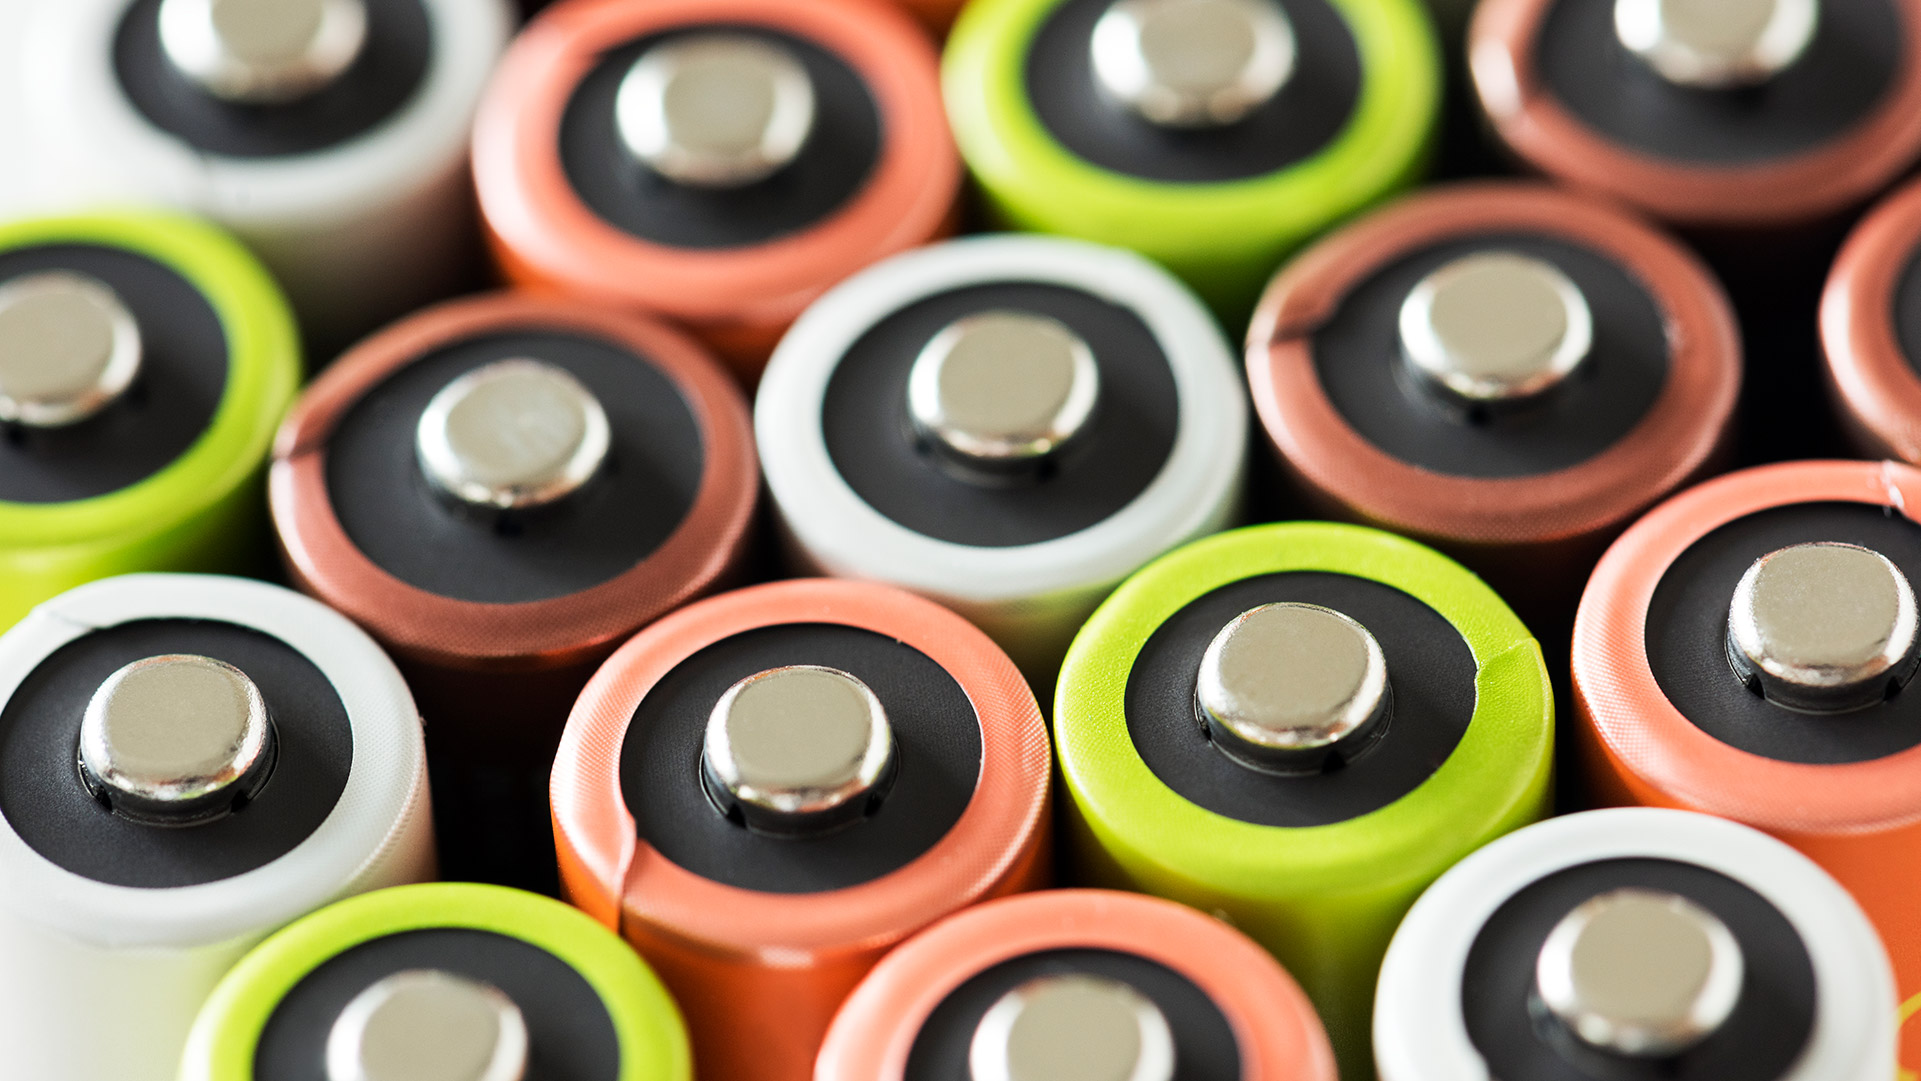 How to Use Vape Batteries Safely